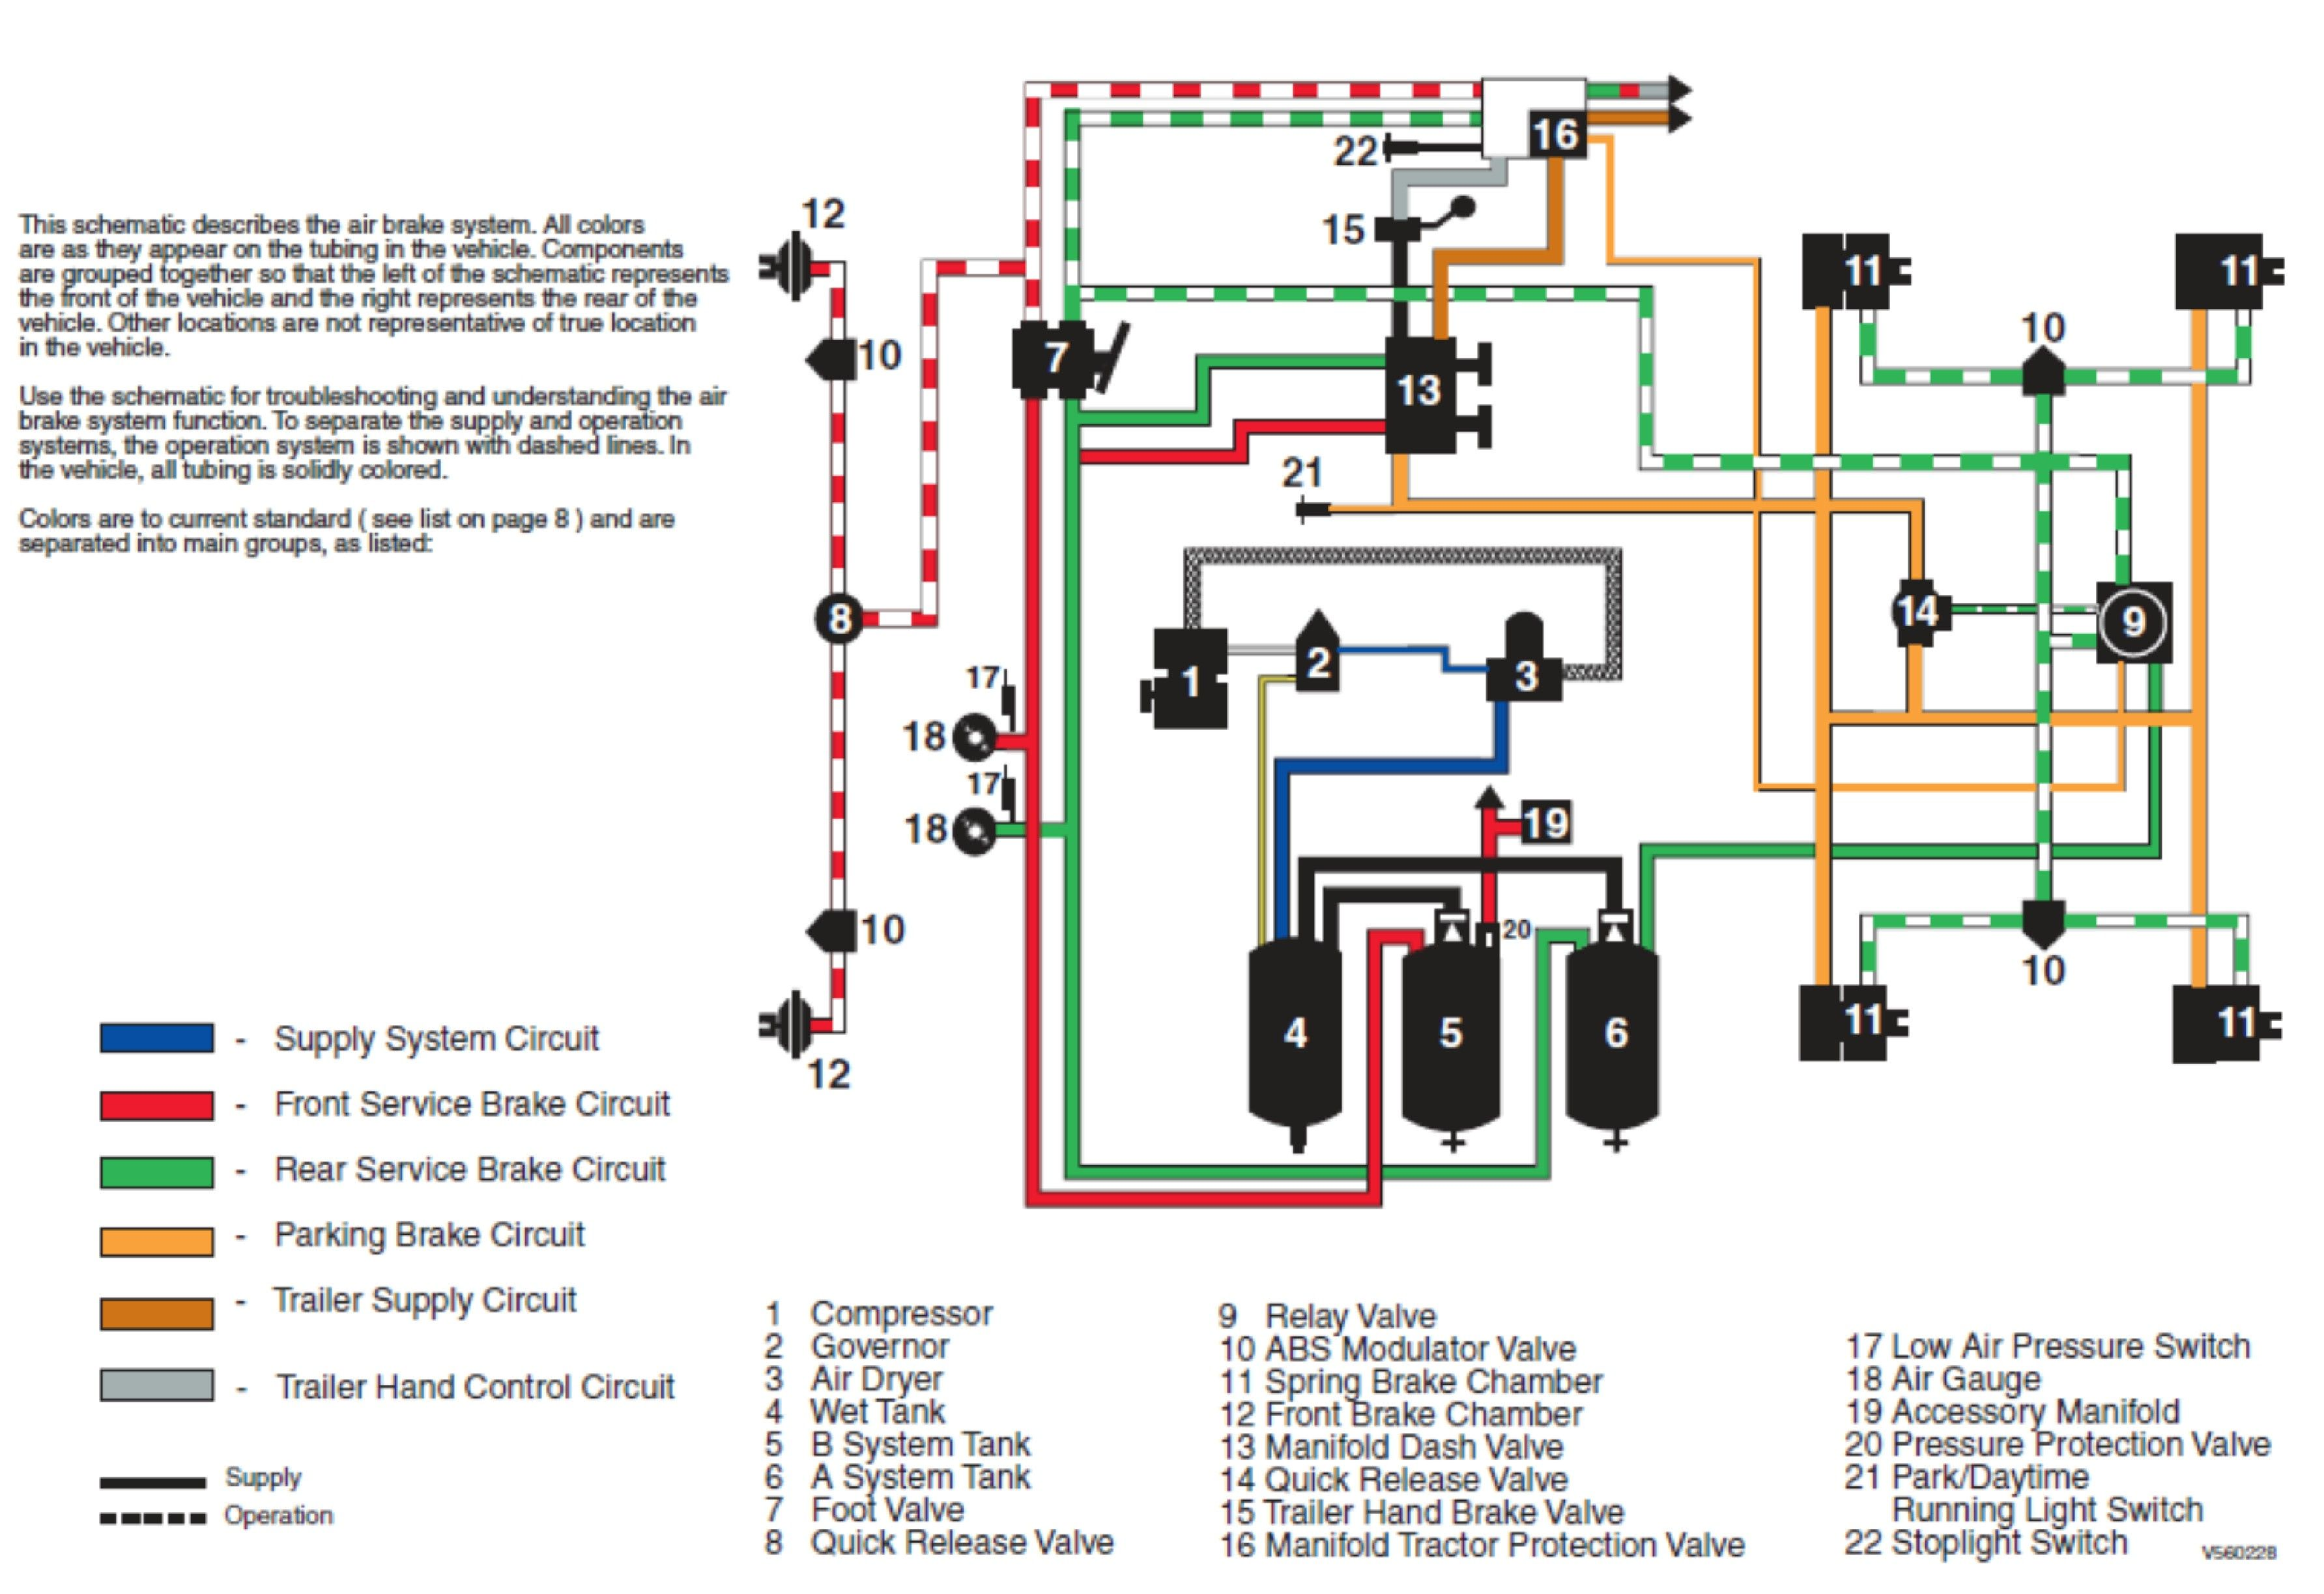 medium resolution of tractor trailer air brake system diagram air brake hyundai santa fe fuse box layout hyundai santa